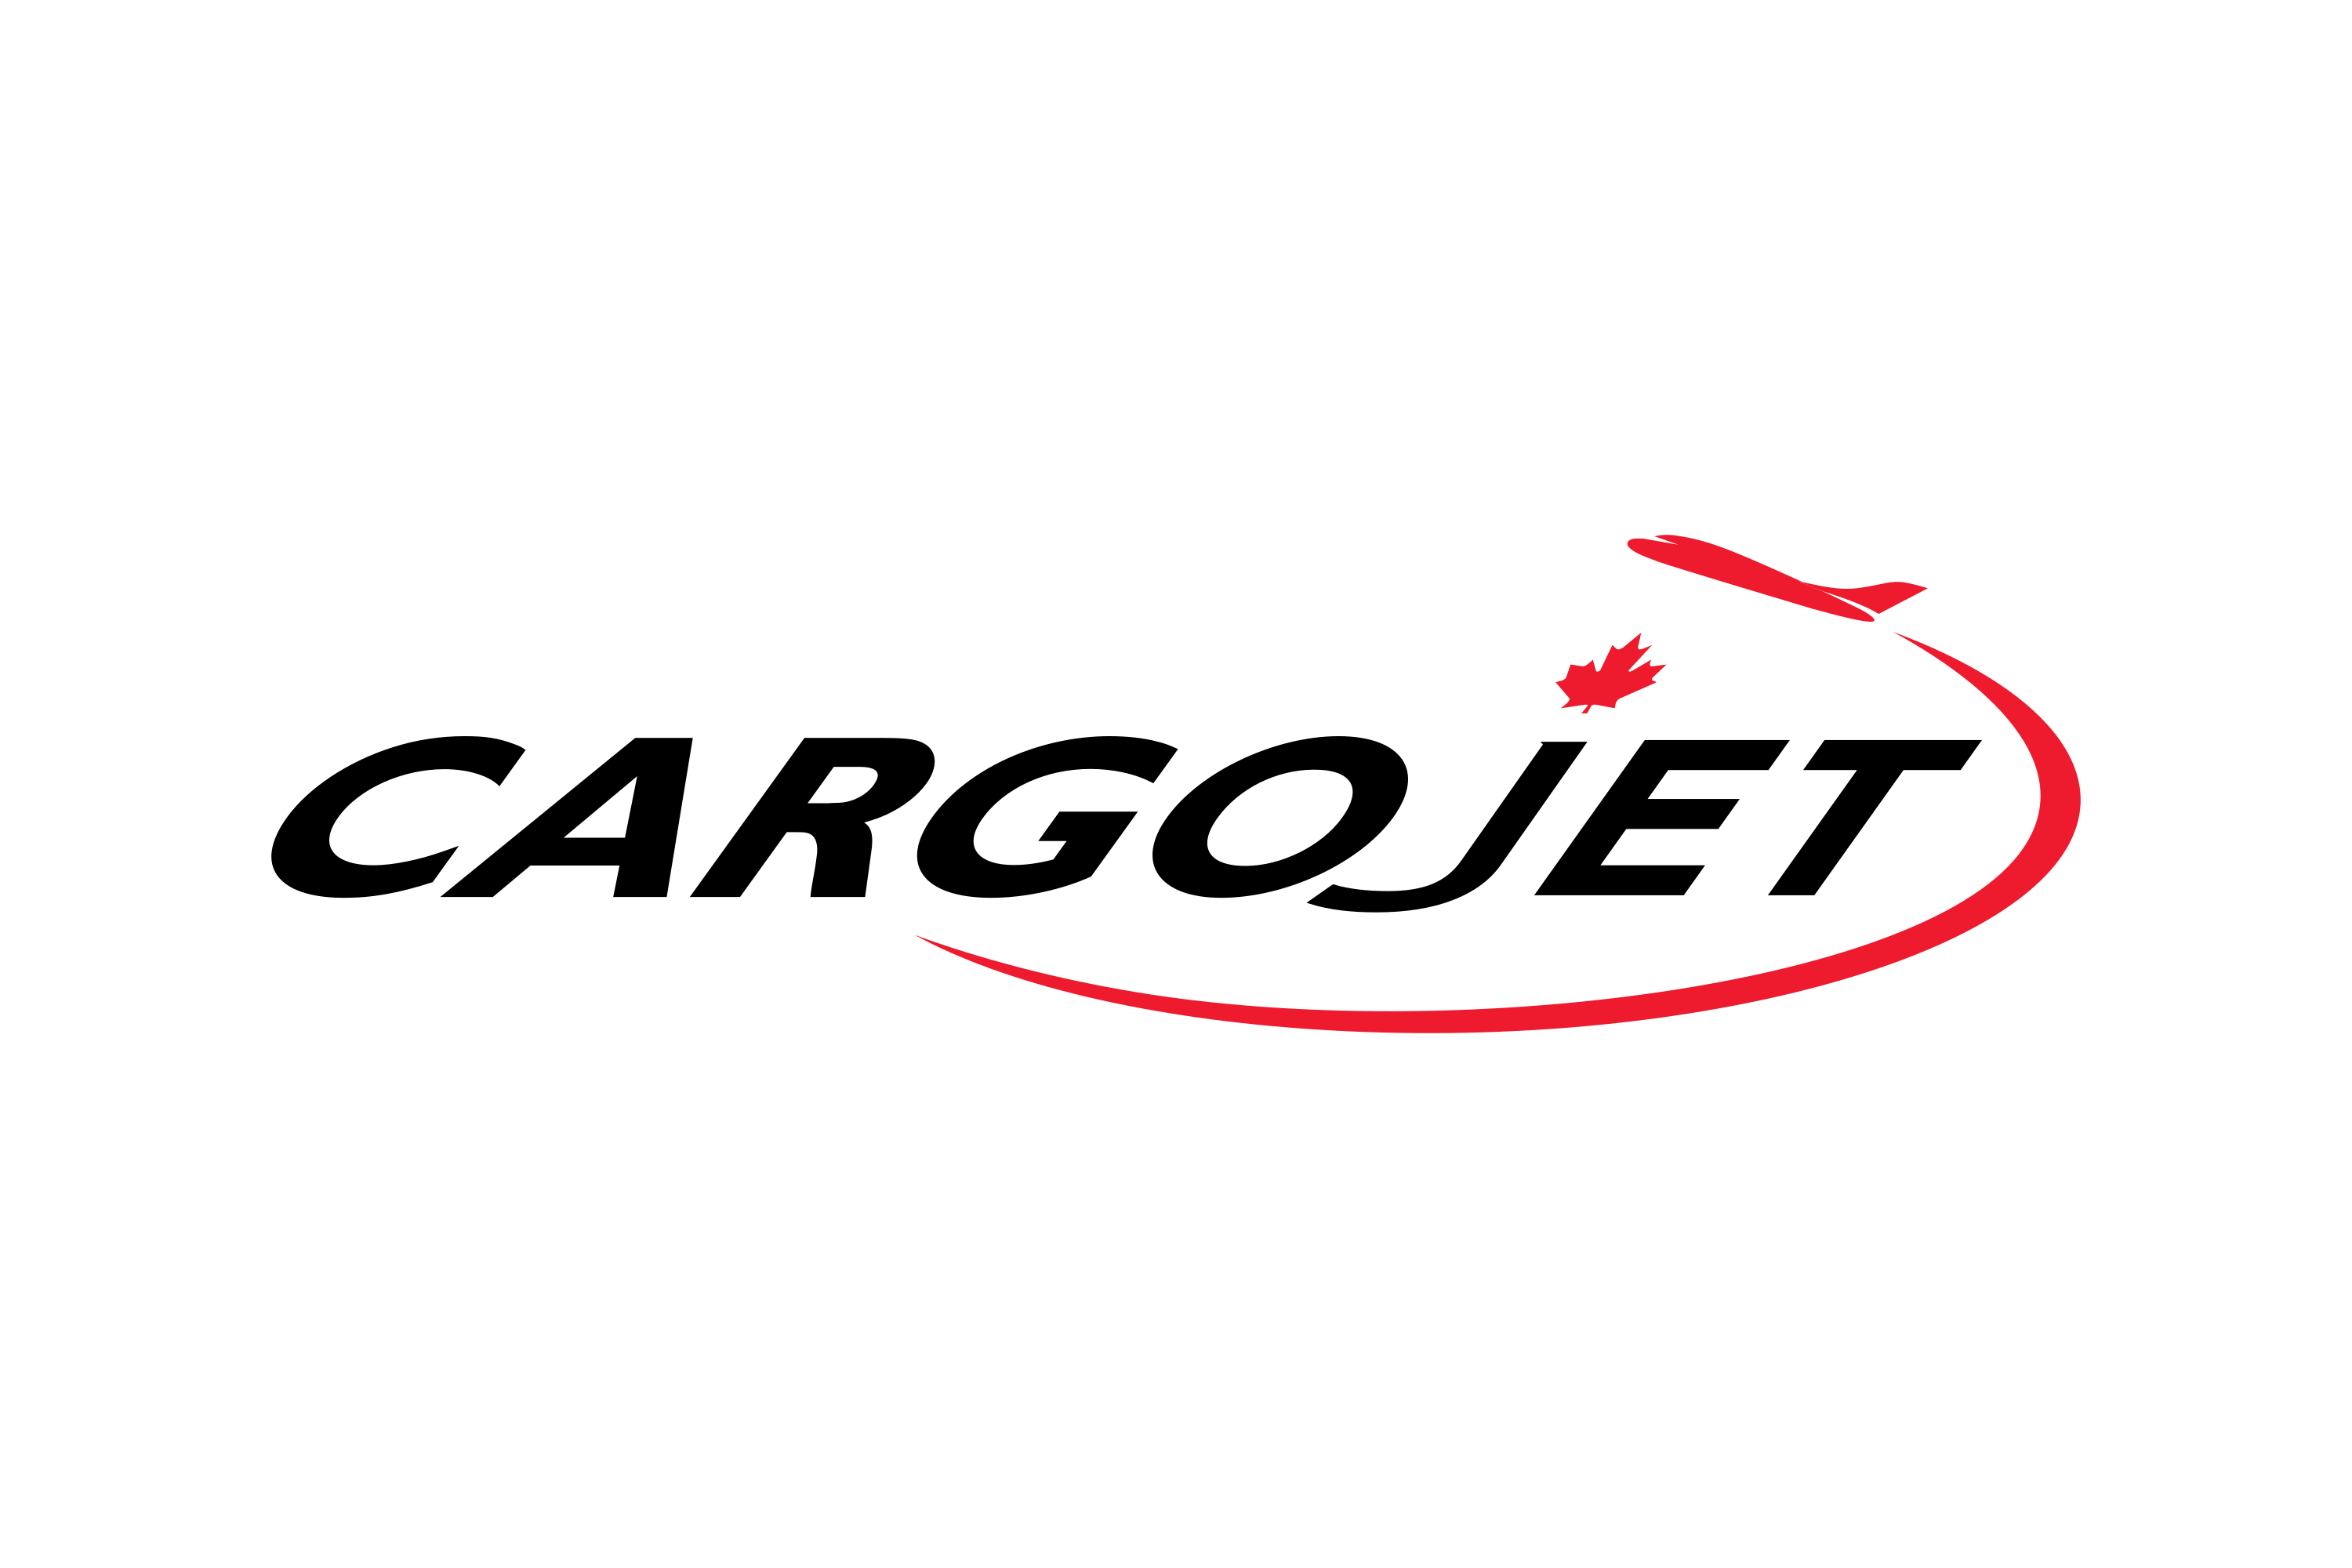 Cargojet Announces C$350 Million Bought Deal Equity Offering